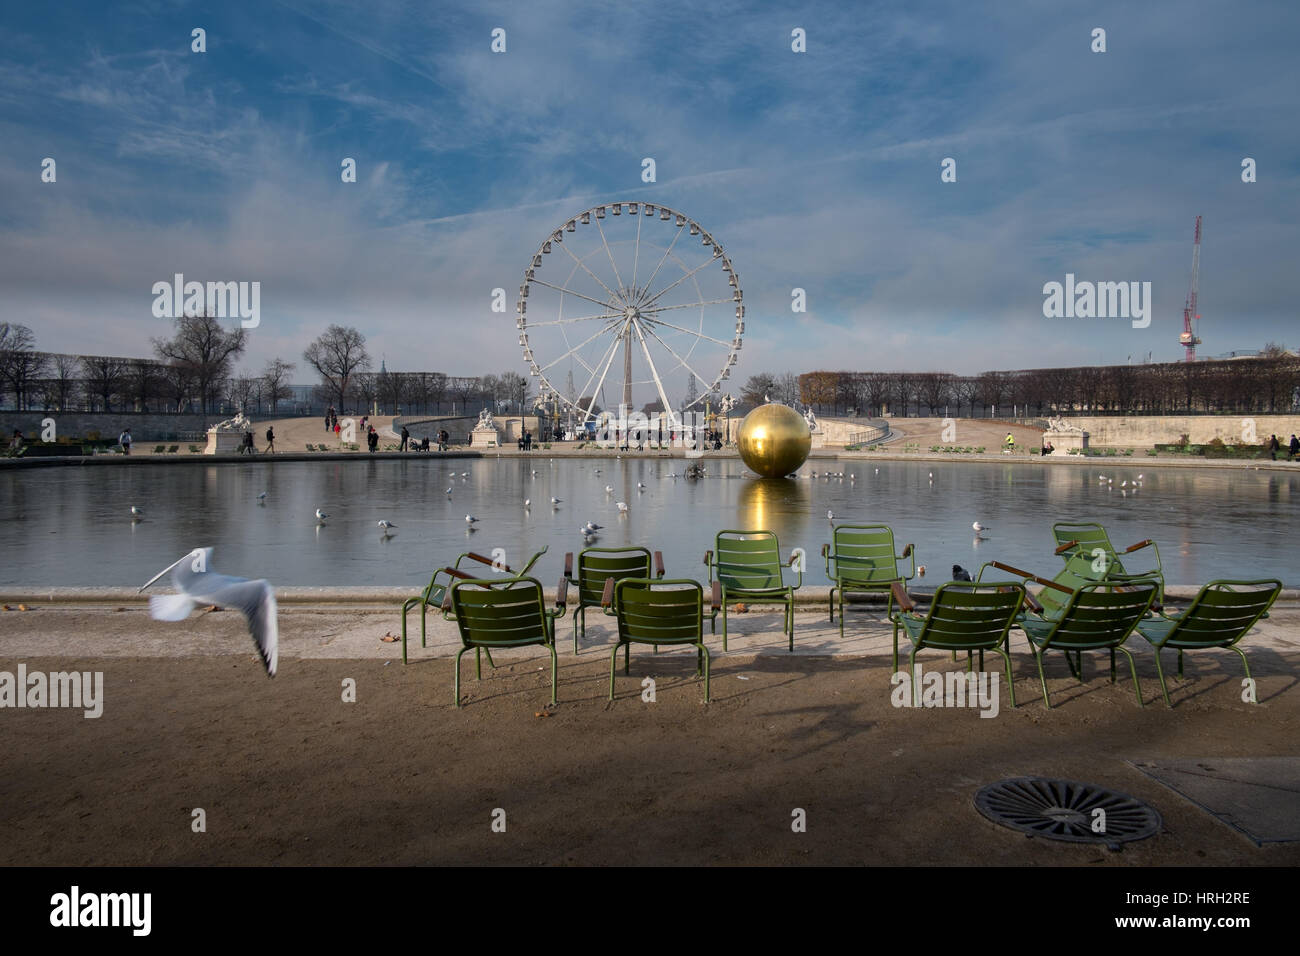 Winter sun at grand bassin octogonal at the jardin des tuileries stockfoto lizenzfreies bild - Grand bassin de jardin ...